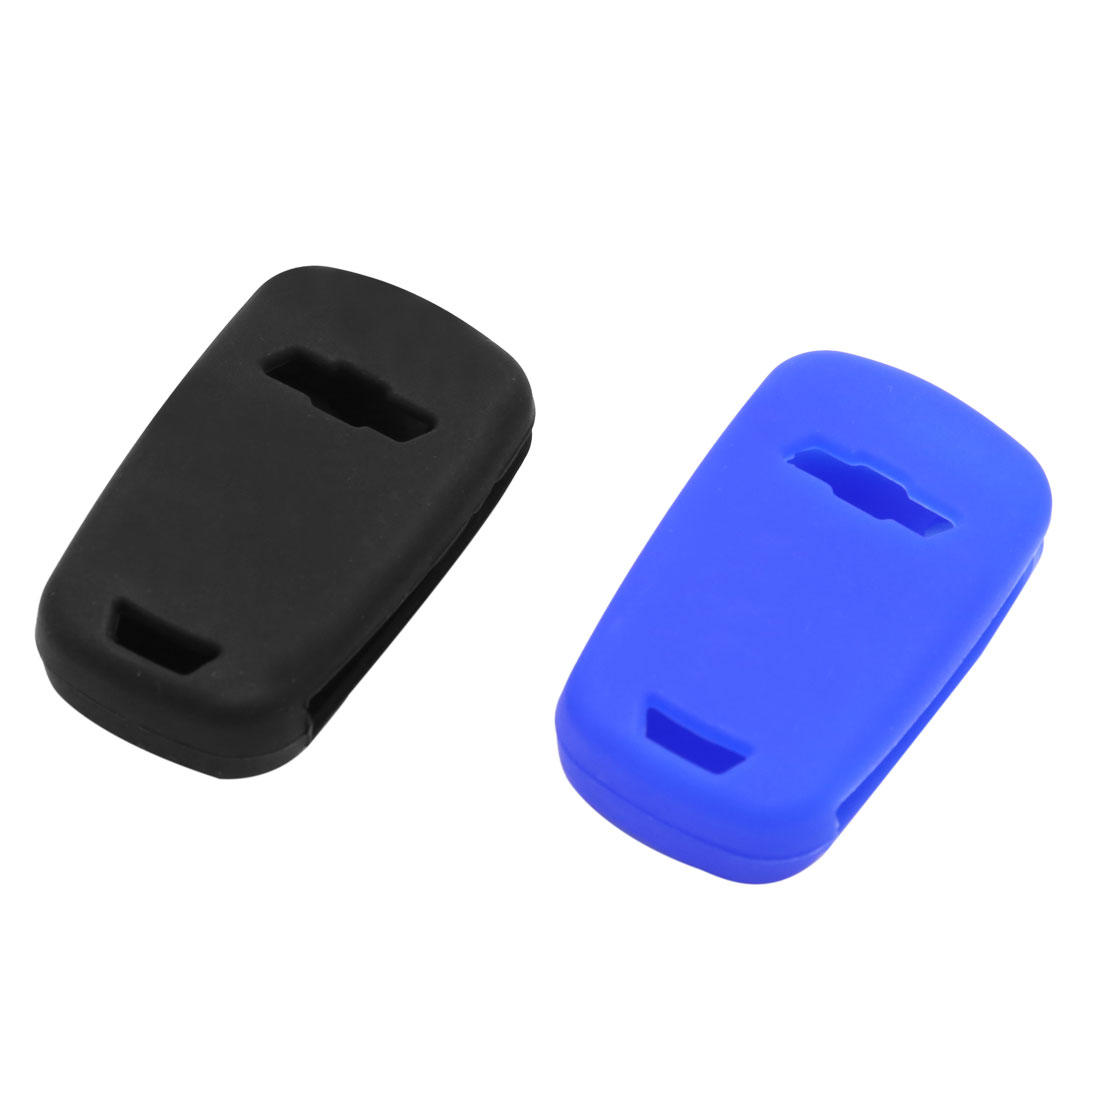 2pcs Blue Black Silicone 3 Btn Remote Key Cover Holder Case Shell for Chevy Cruze - image 3 of 4